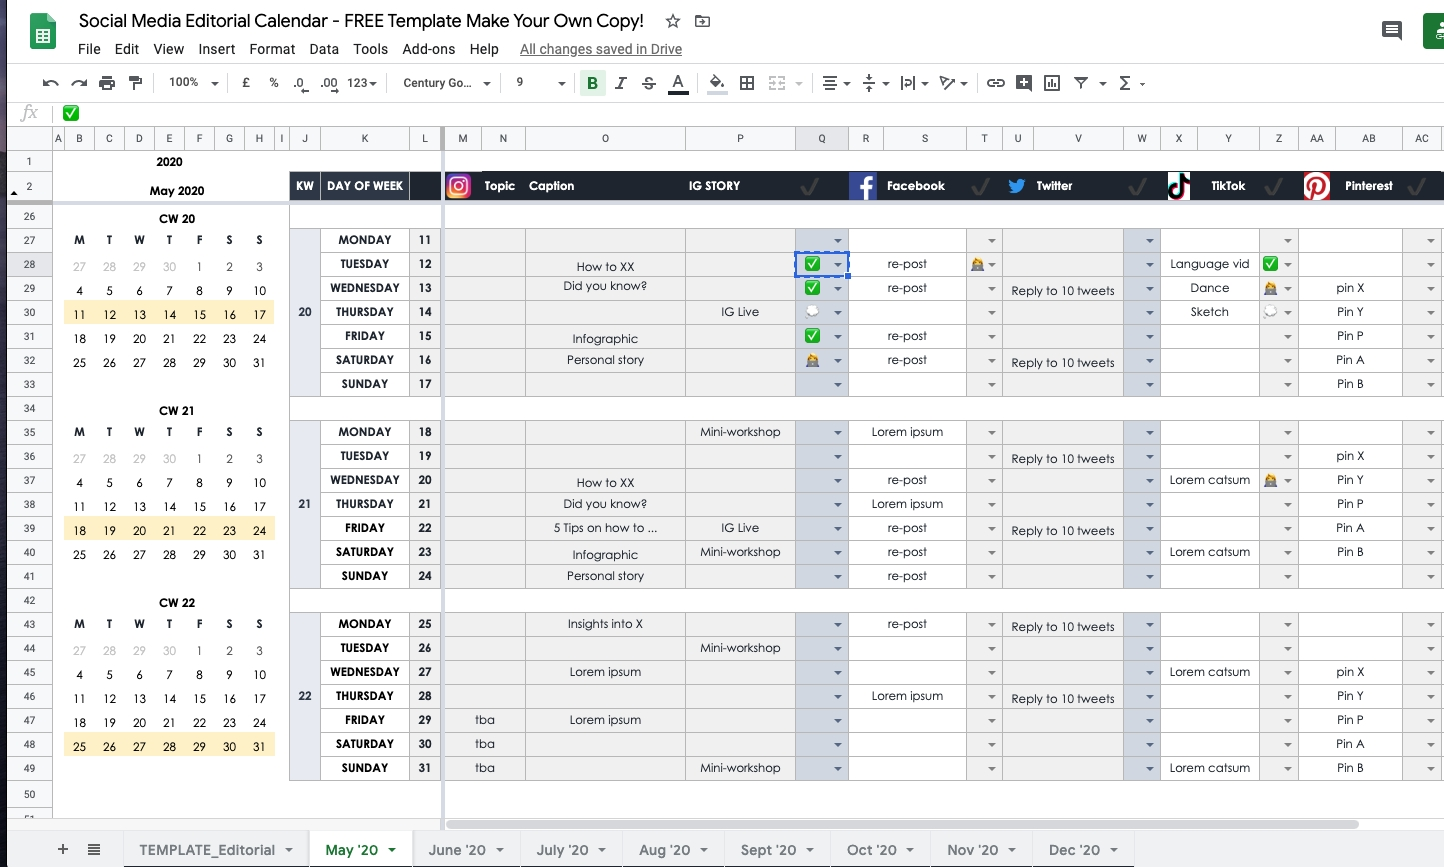 How To Plan Your Social Media In 2020 As An Individual Or Calendar Template On Google Sheets